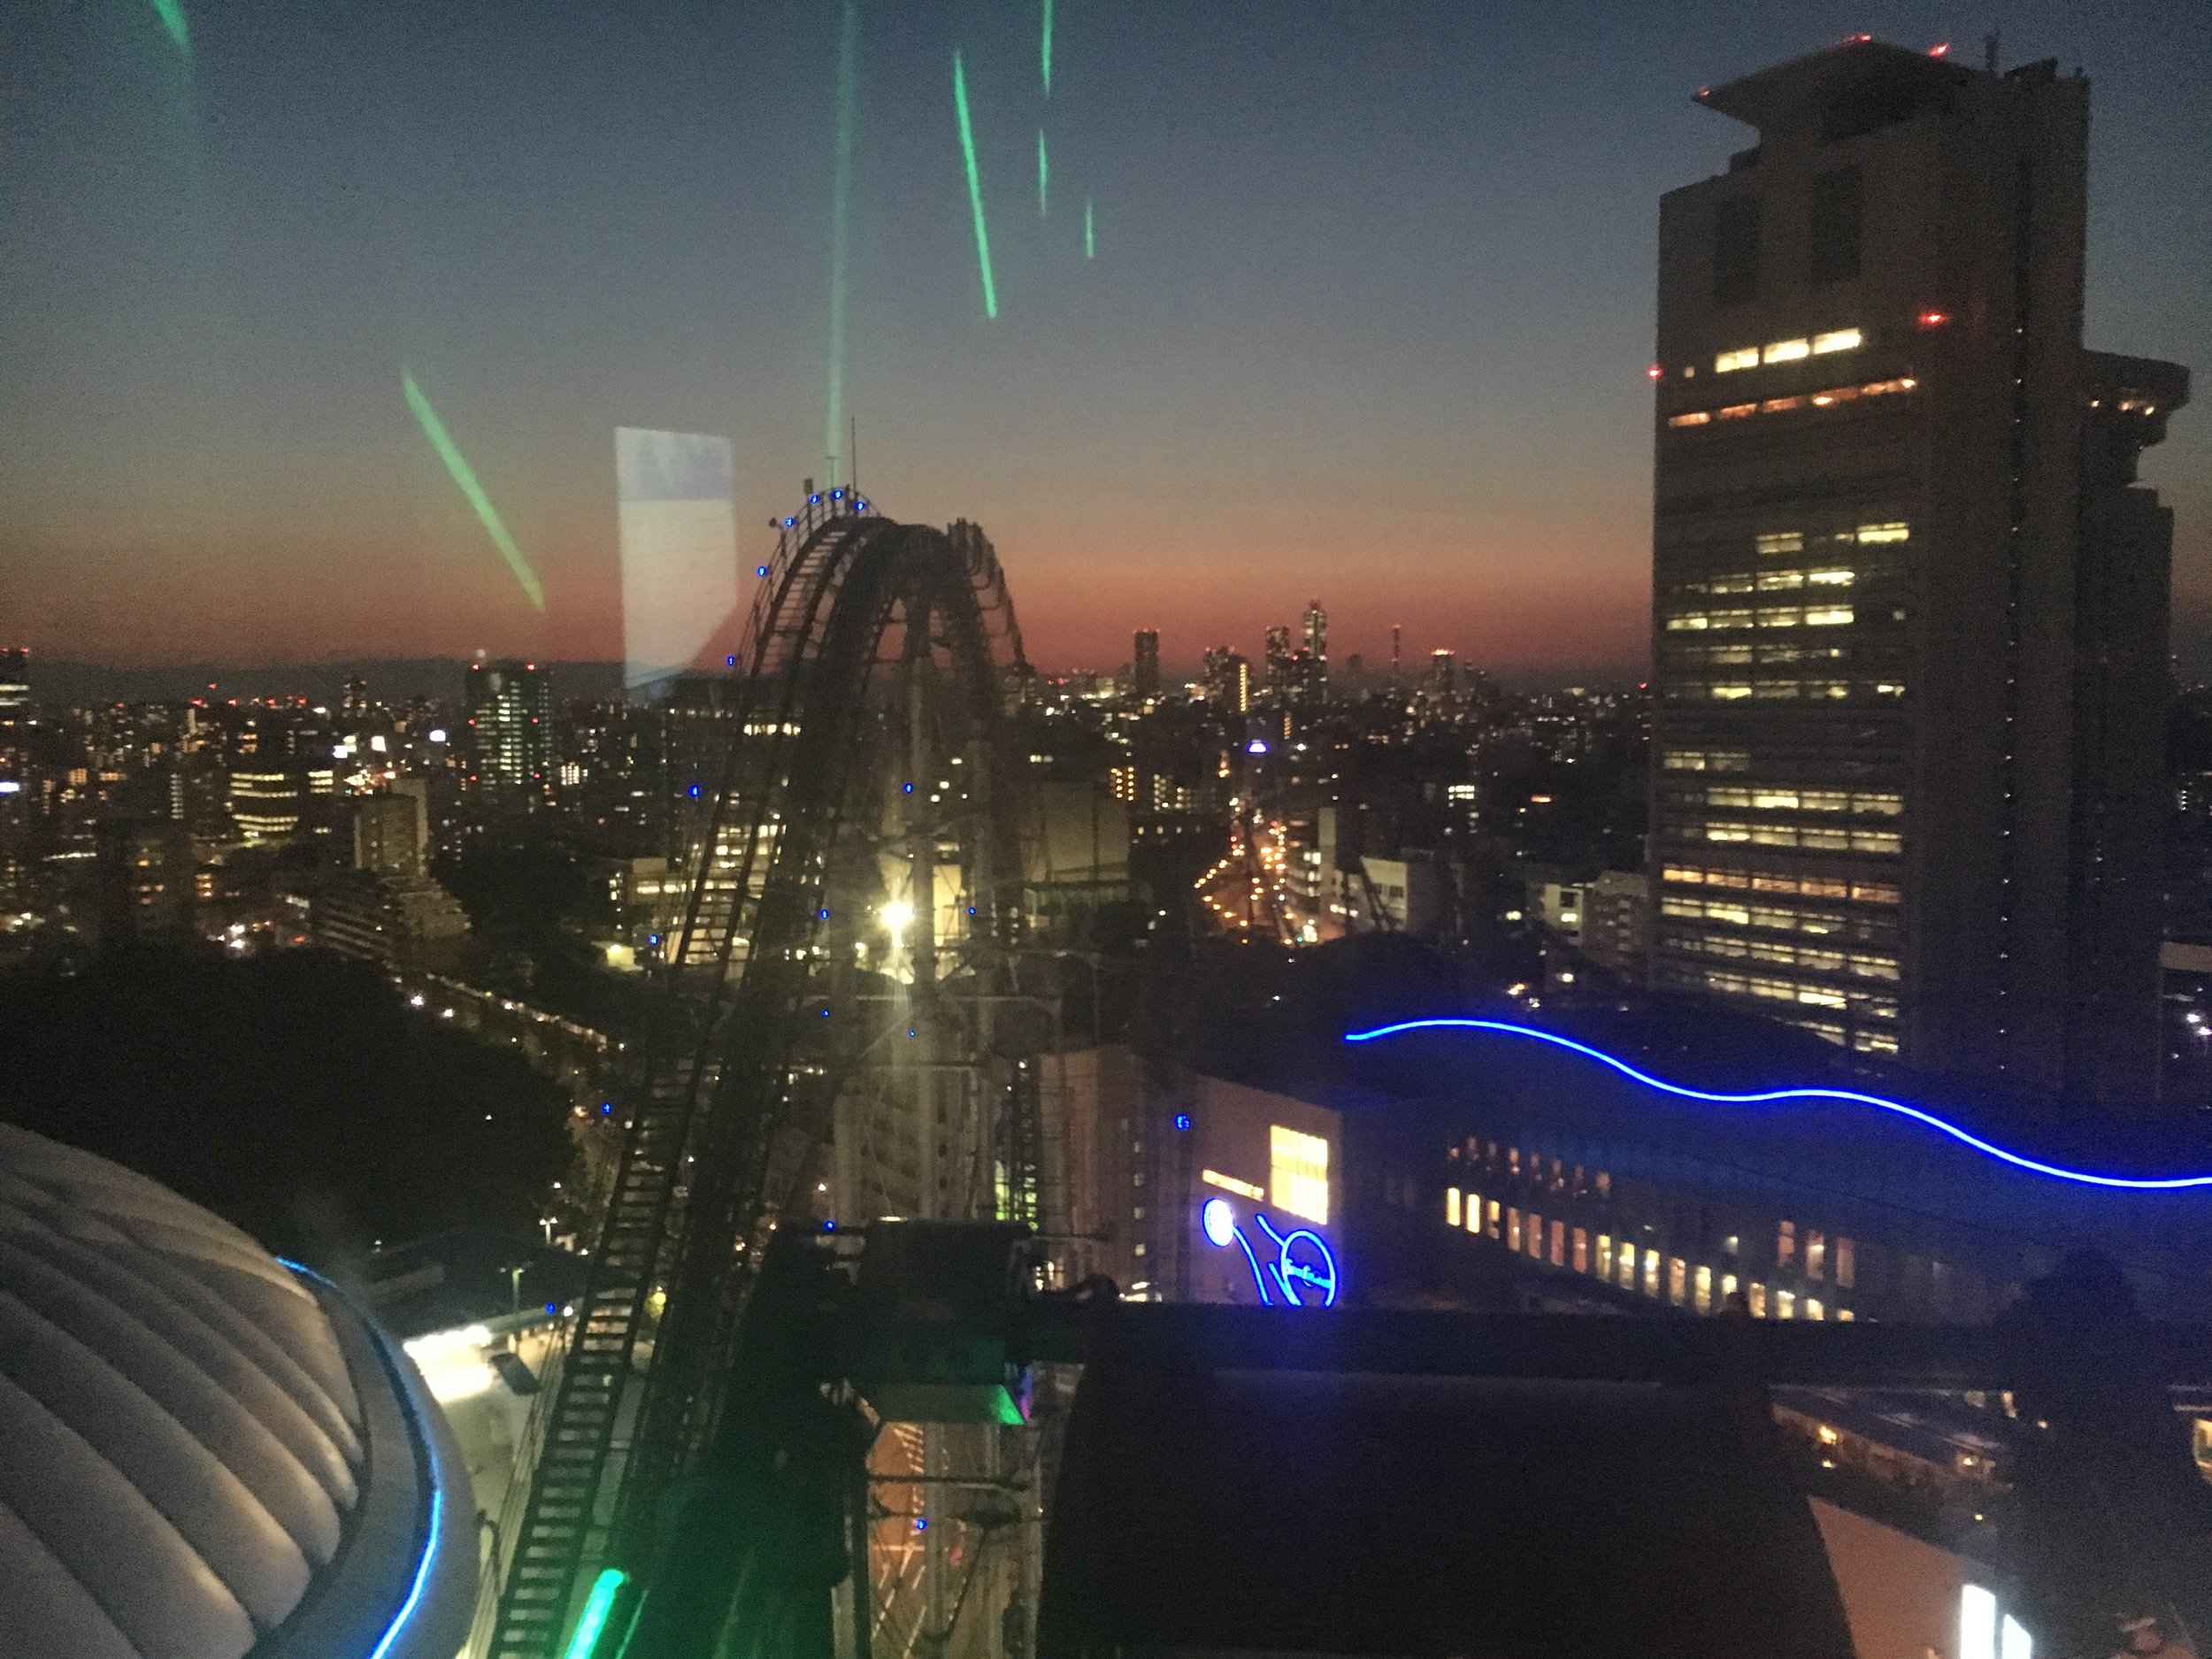 Final views of the roller coaster and Tokyo Tower way in the distance. (The next tallest building to the left of the rig one one the right, looks like a needle.)